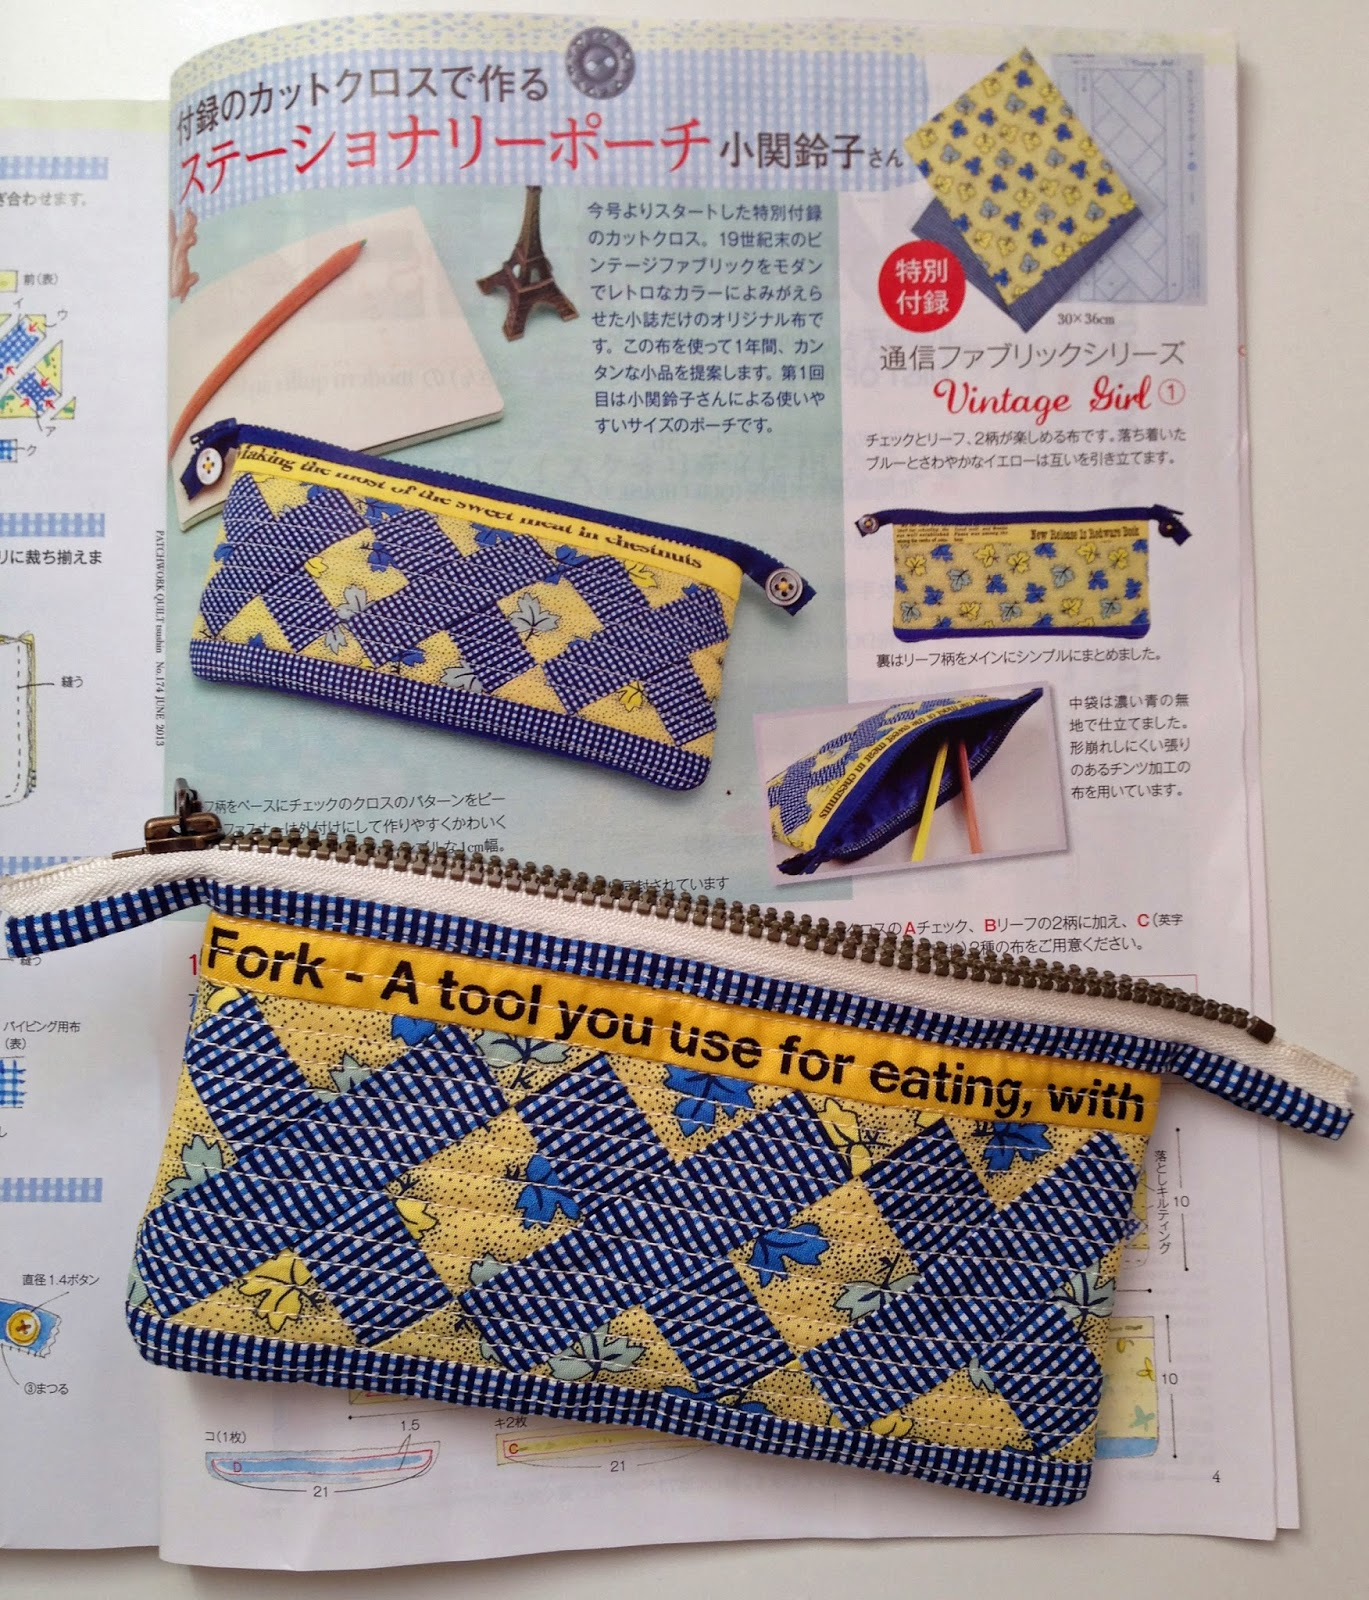 Vintage Girl Zip Pouch by Nizhoni Workshop, from the pages of Patchwork Tsushin Magazine